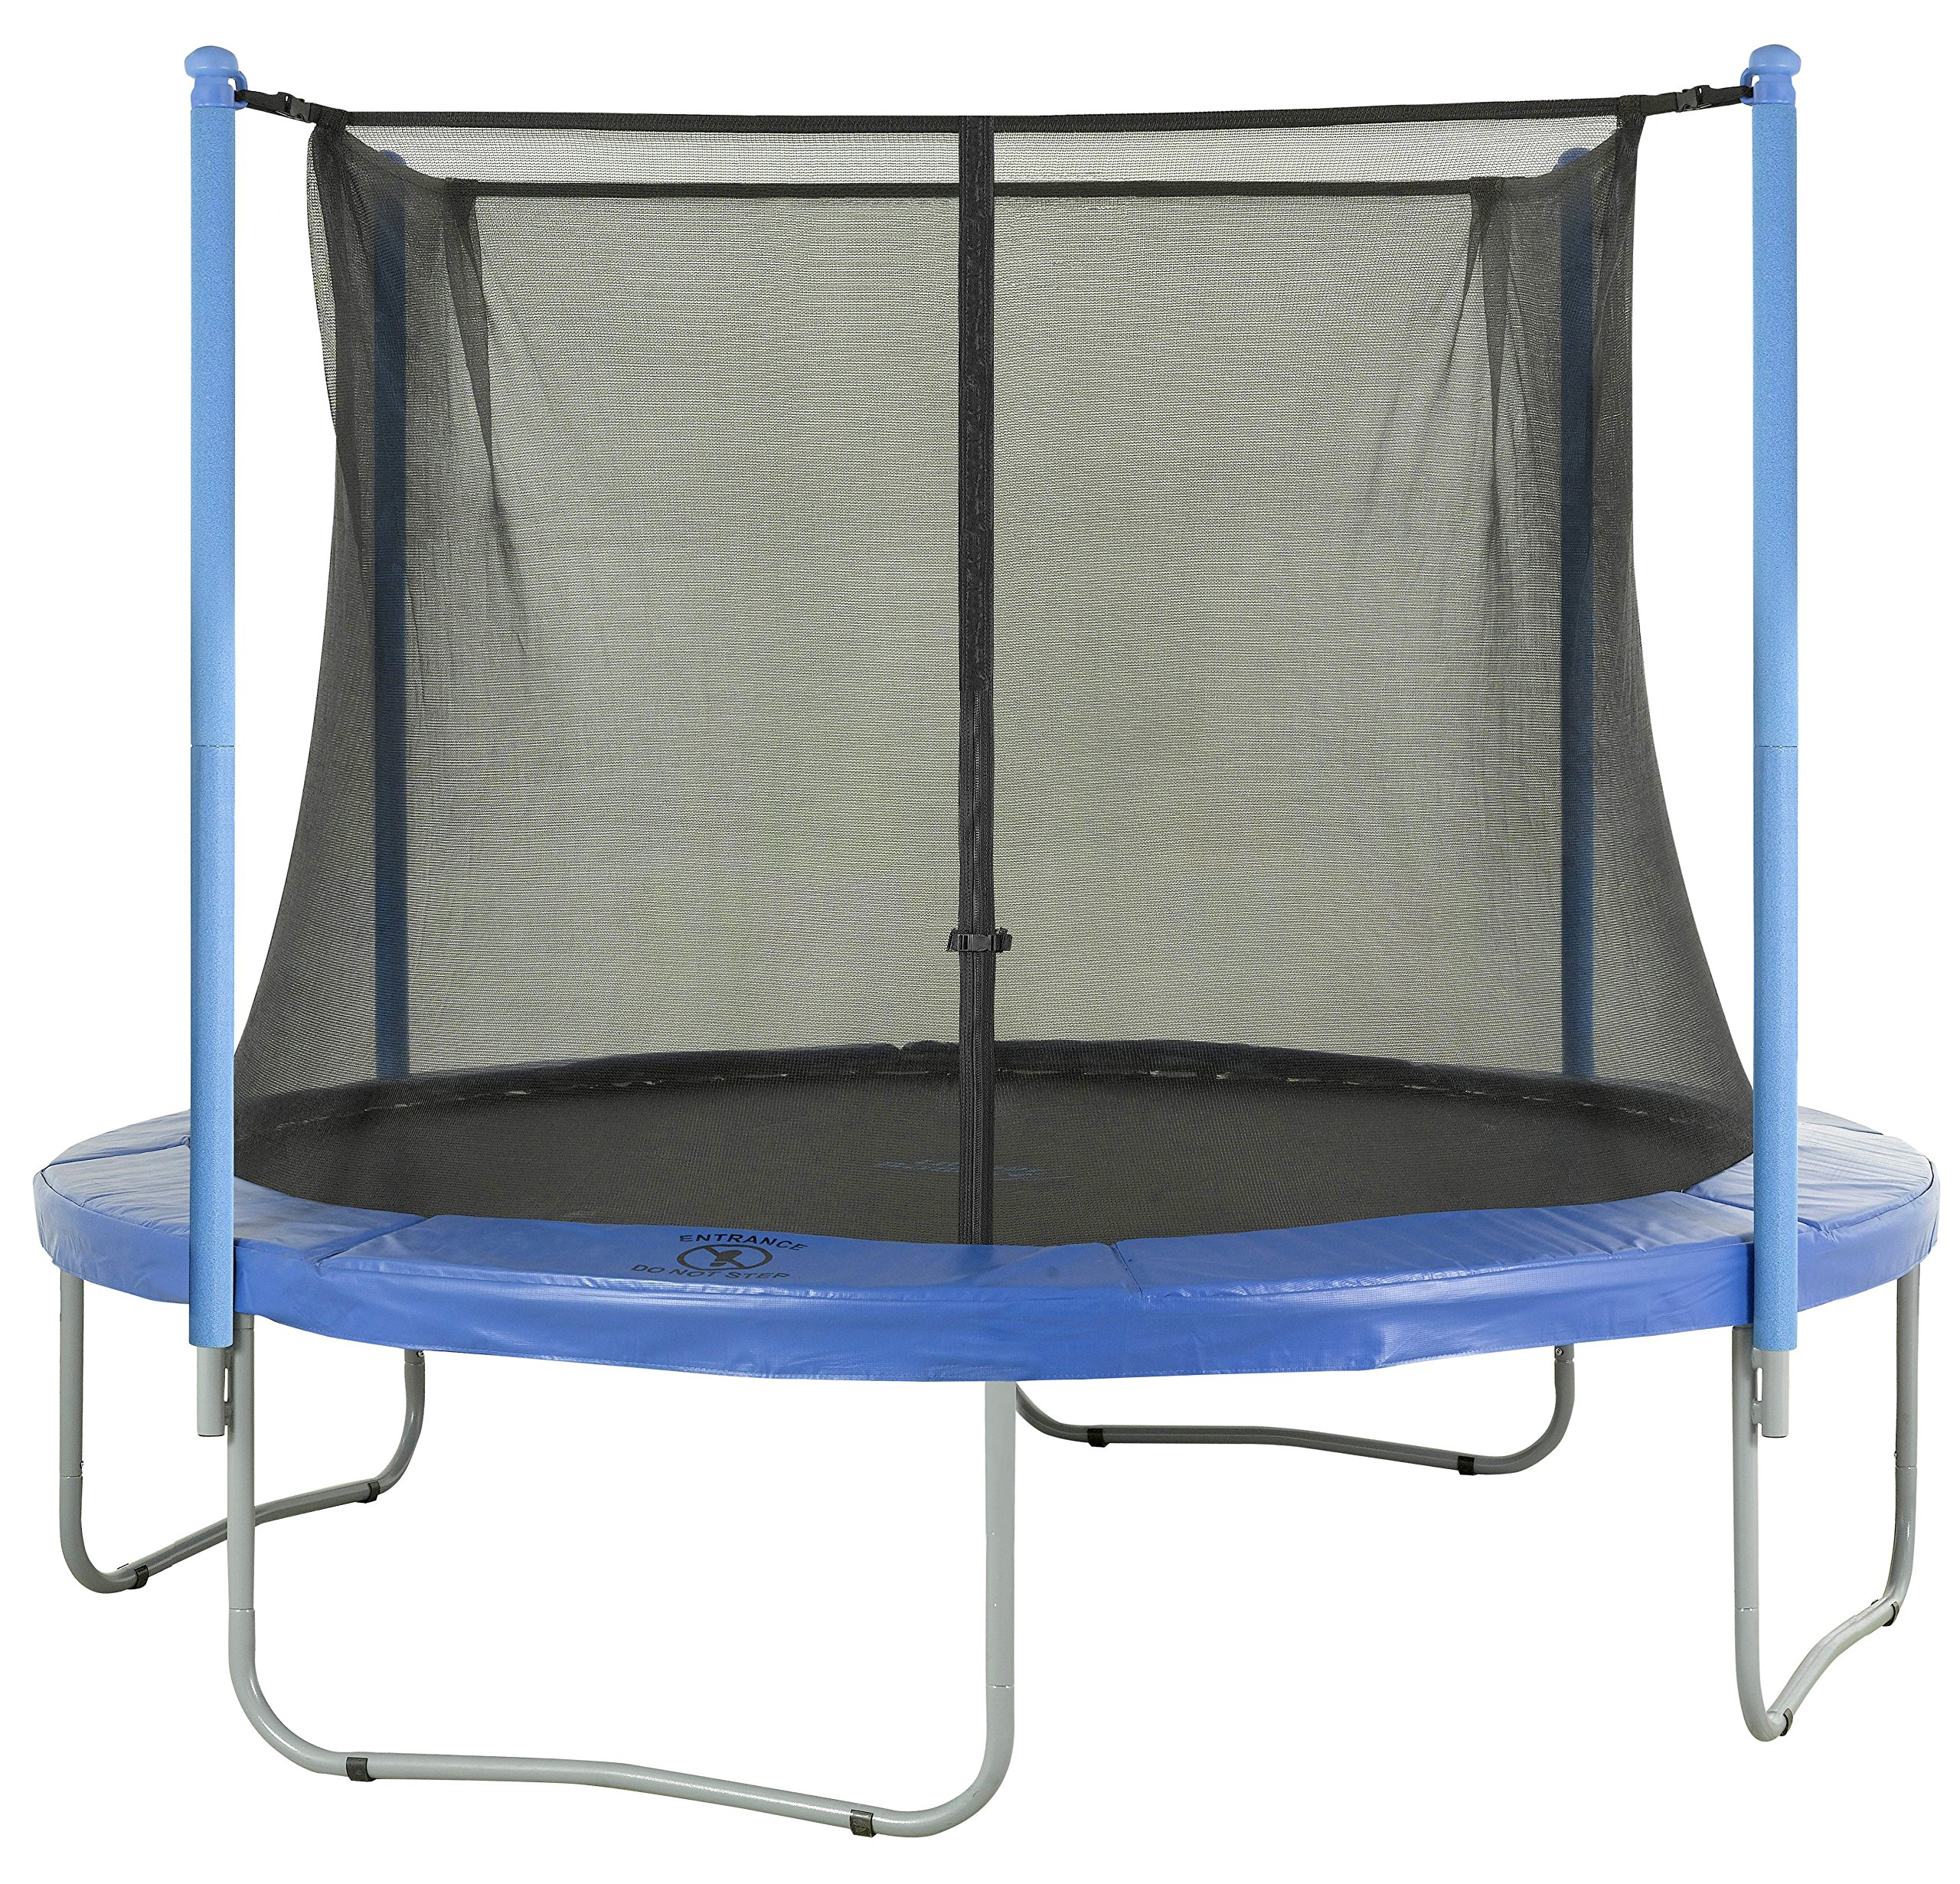 Upper Bounce Trampoline Replacement Enclosure Net, Fits for 14 FT. Round Frames, with Adjustable Straps, Using 4 Poles or 2 Arches - Net Only by Upper Bounce (Image #6)